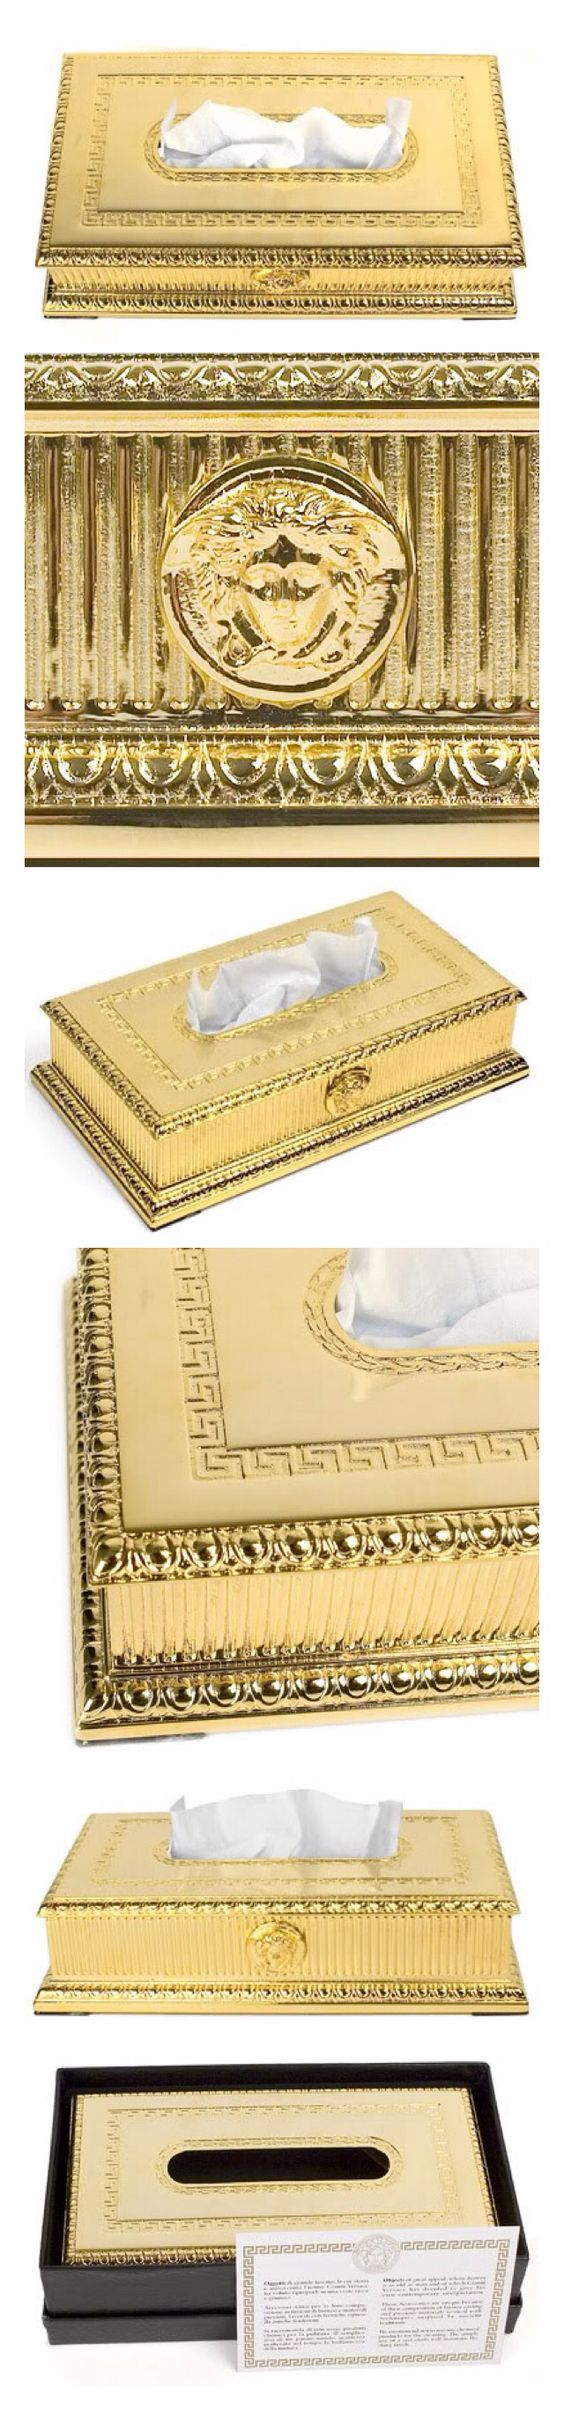 Luxury Versace Gold Accessories for the home⭐️  I want one of these :)